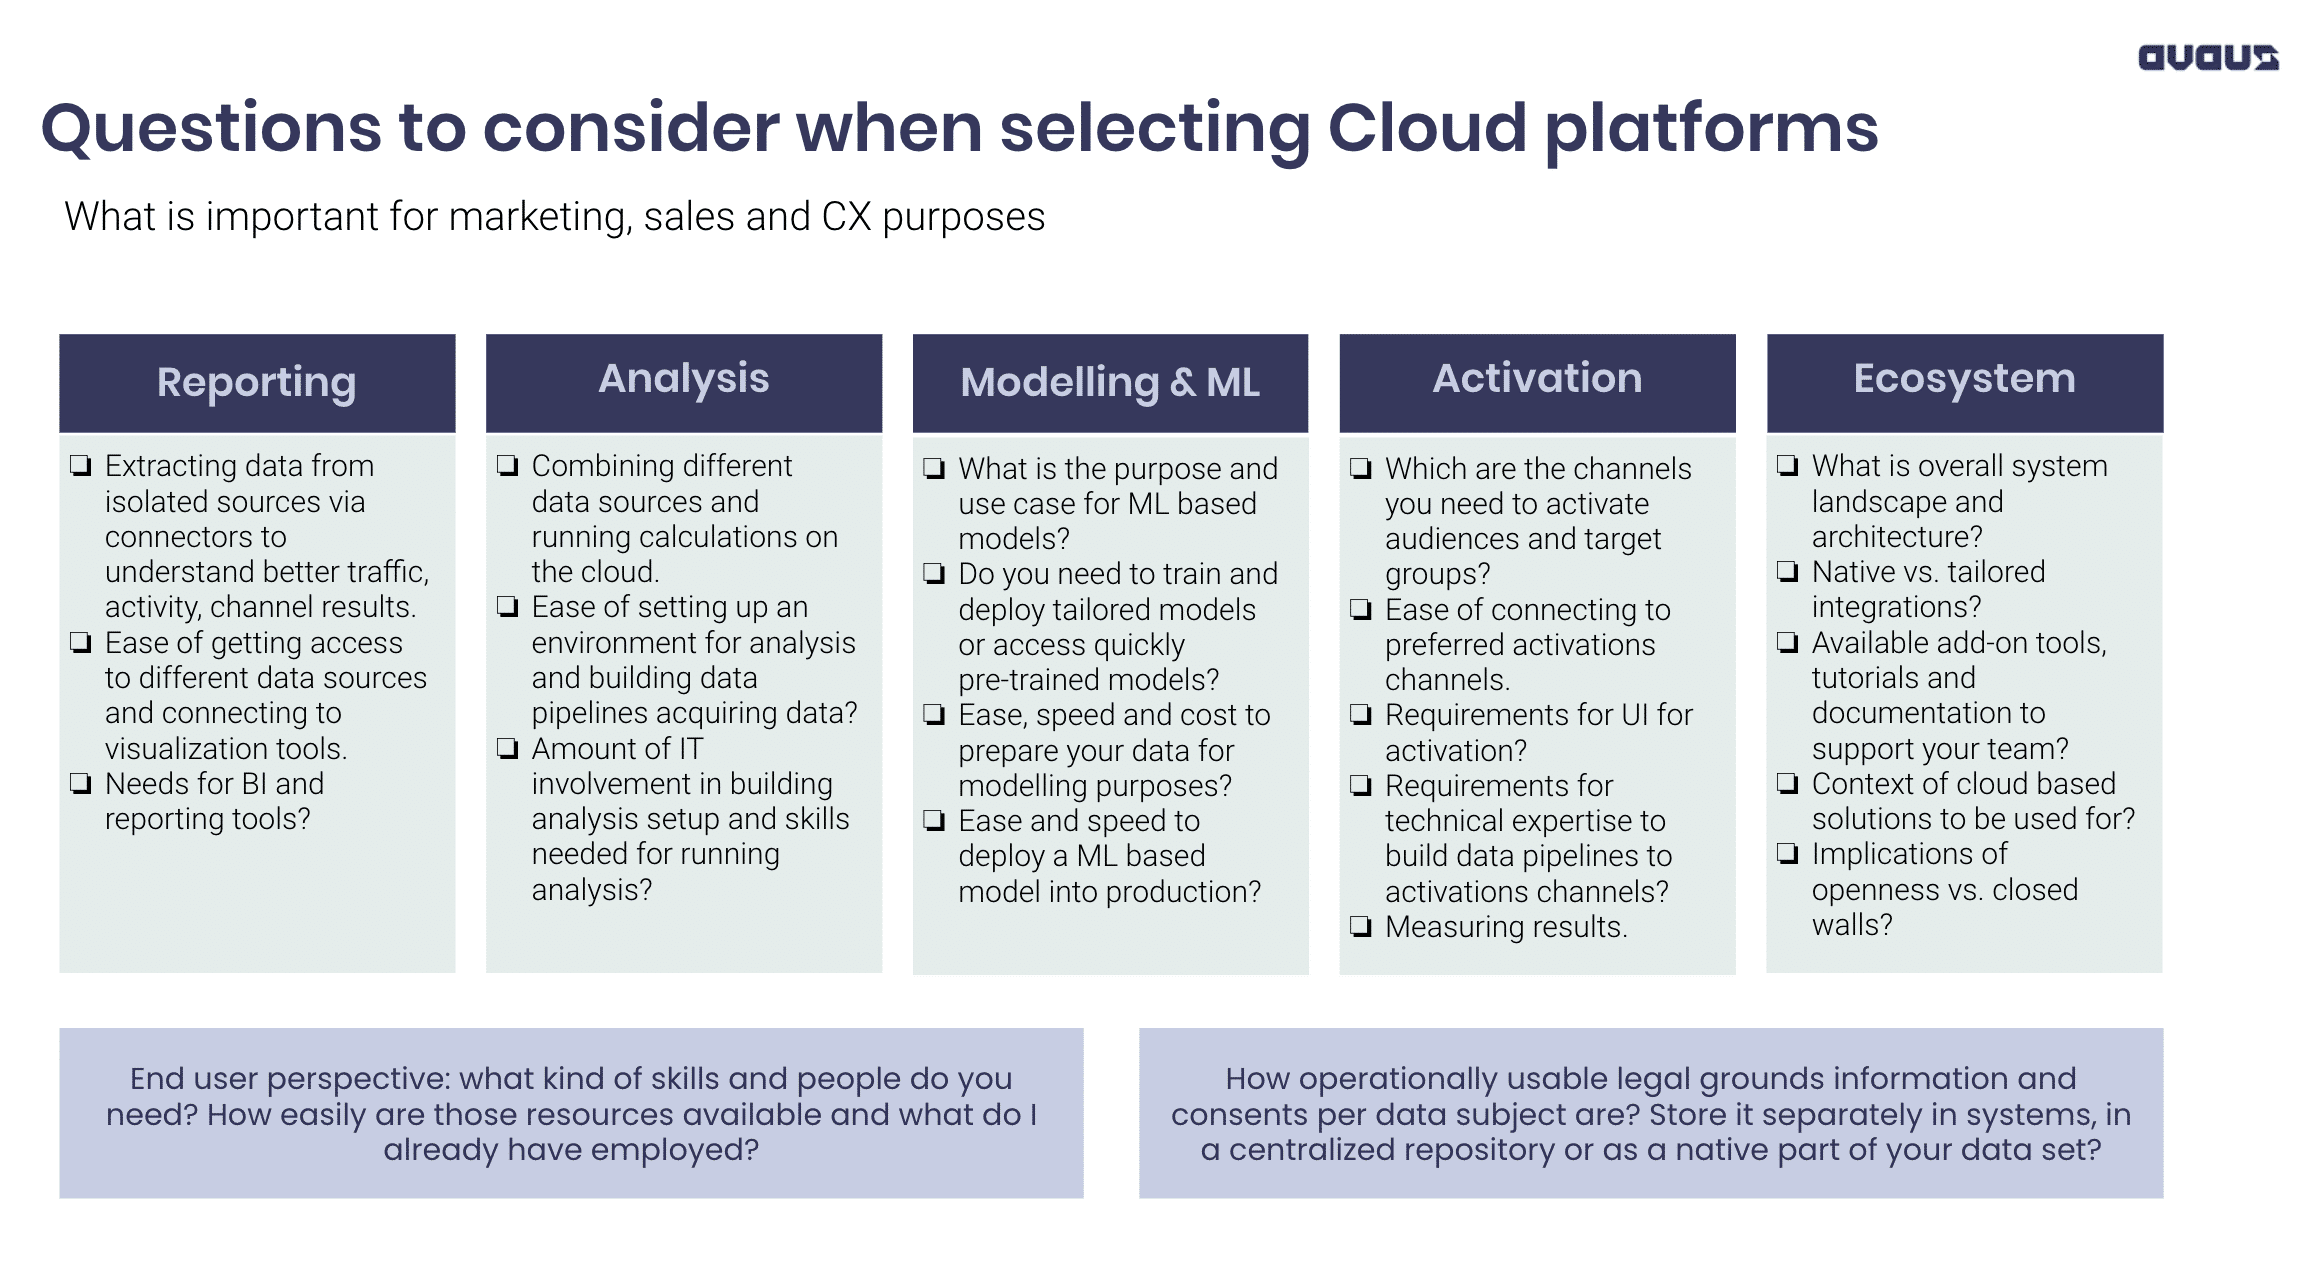 Questions to consider when selecting Cloud platforms